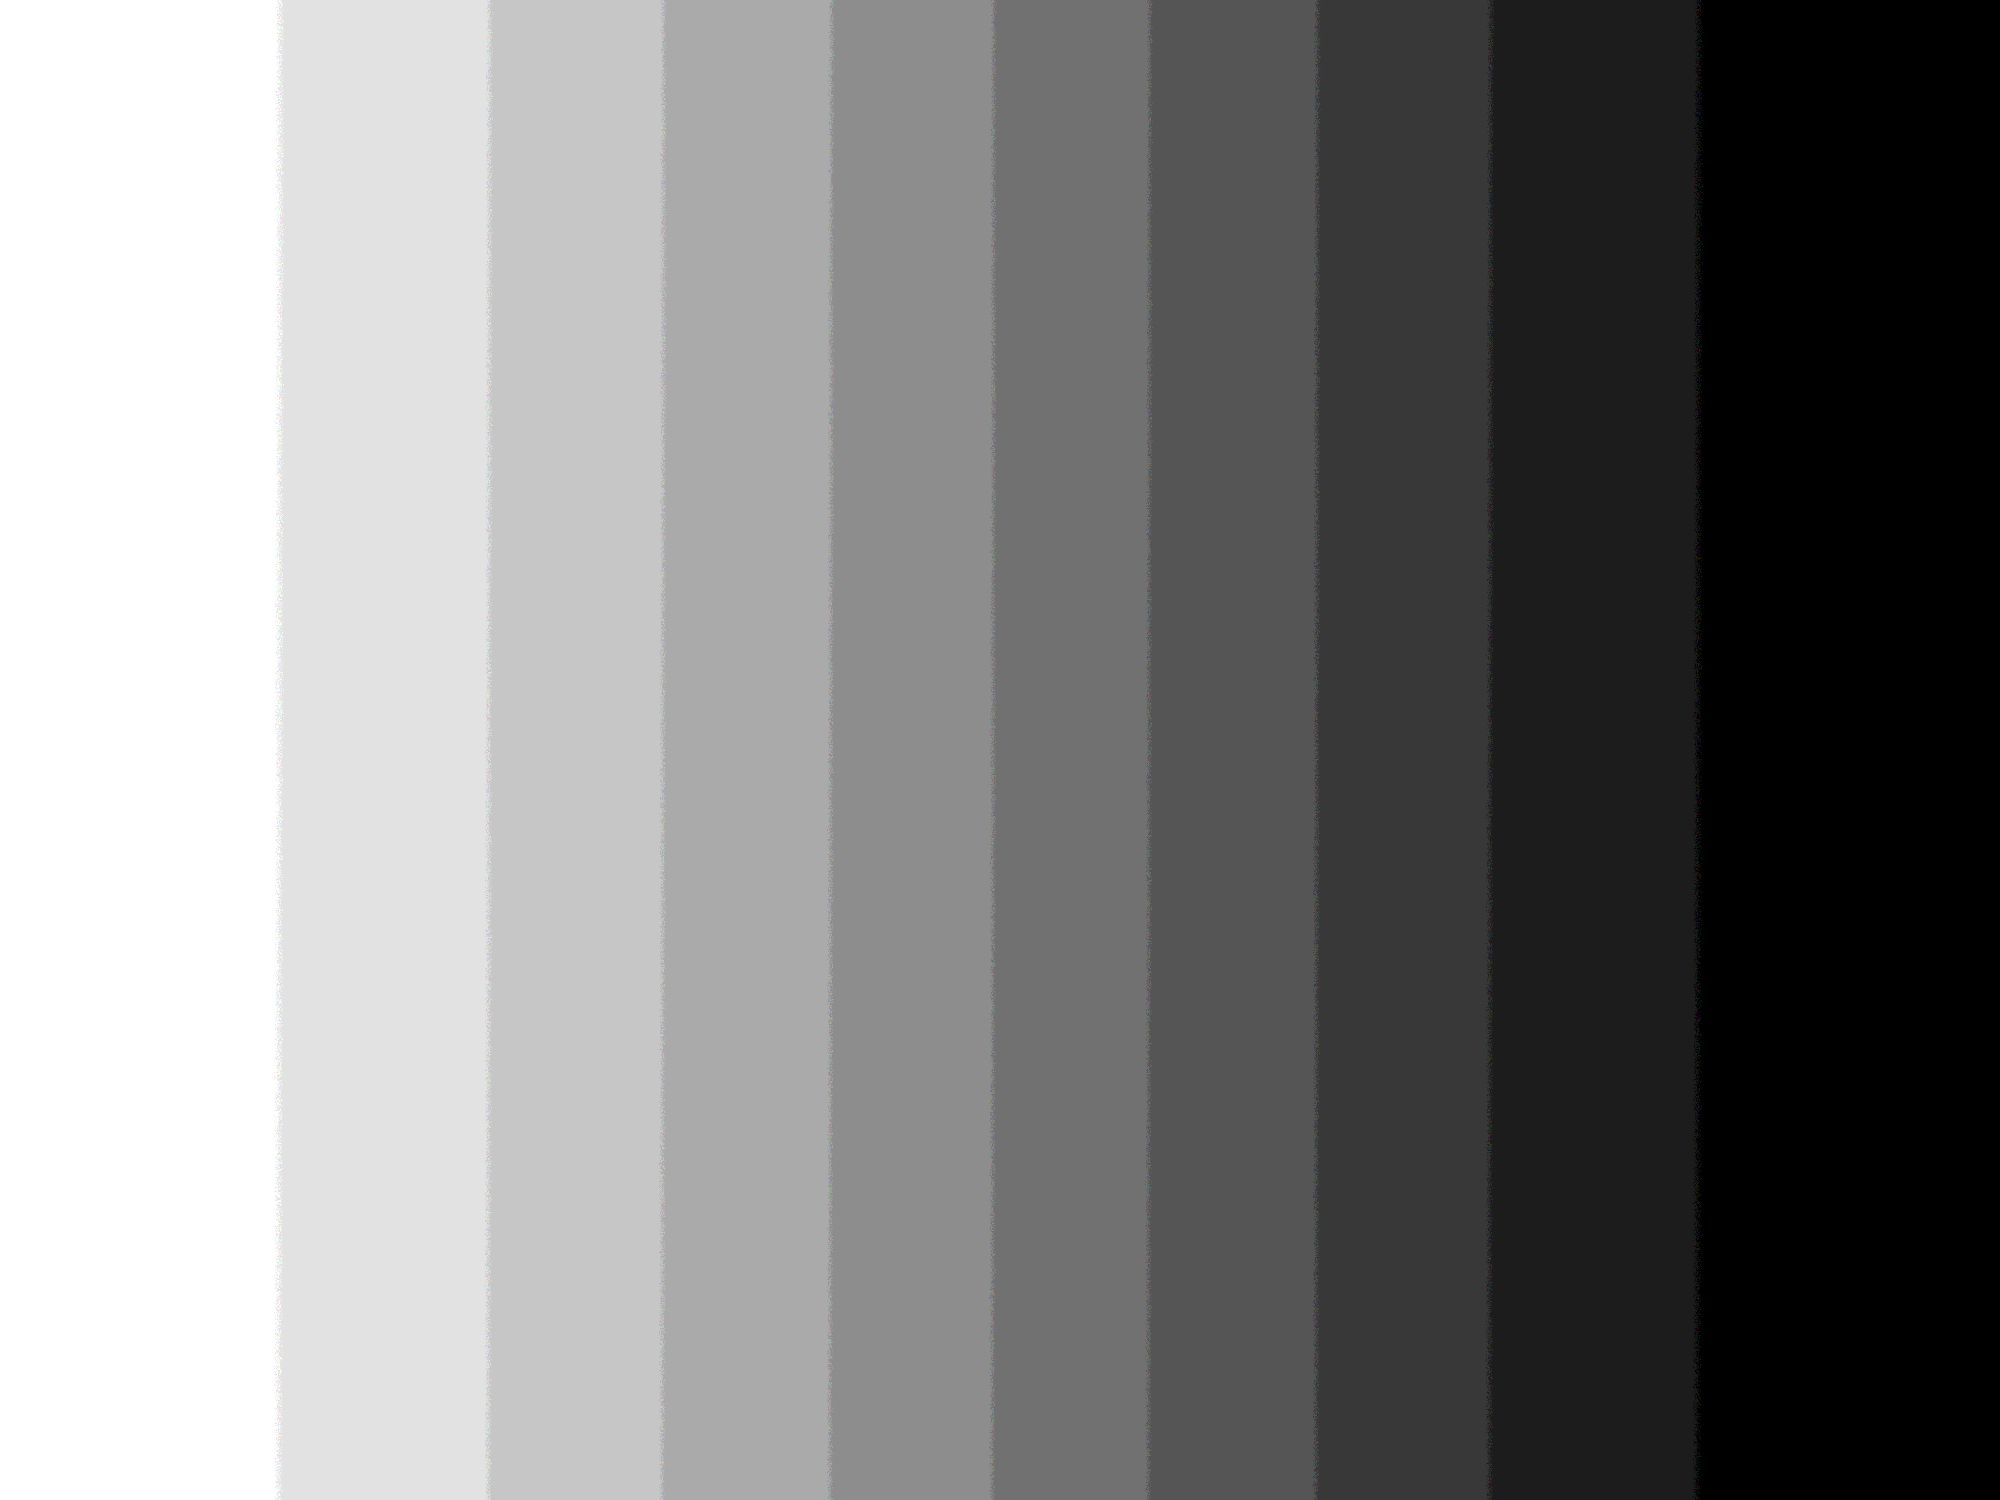 A gray scale, vertically arranged.